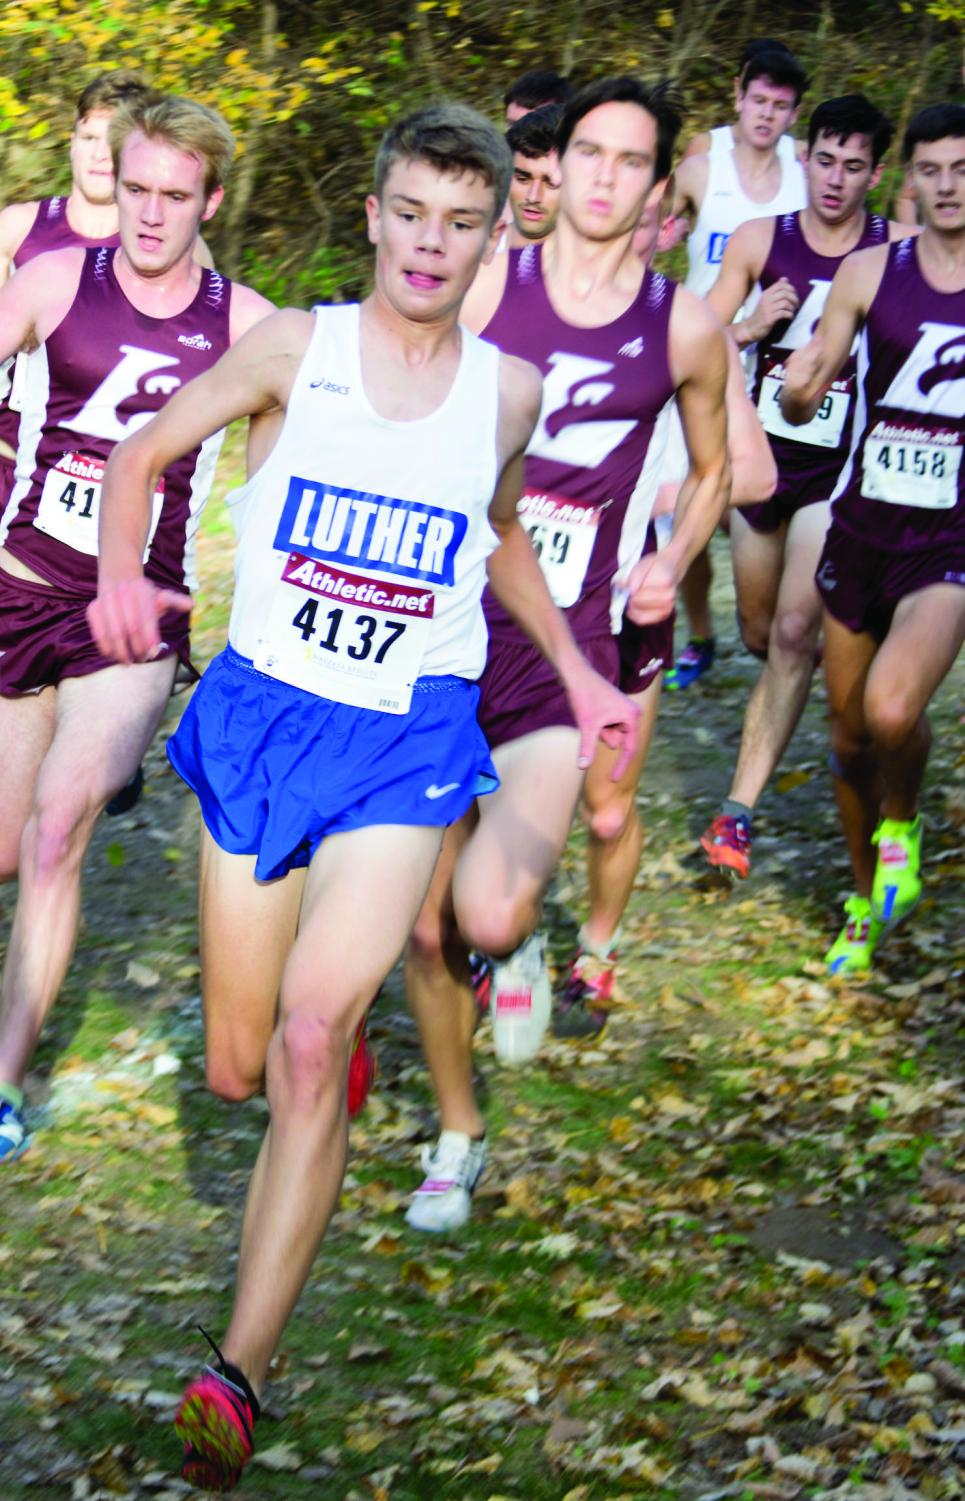 Maximilian Walker (21) cruises downhill,  a pack of La Crosse runners in pursuit during the dual.